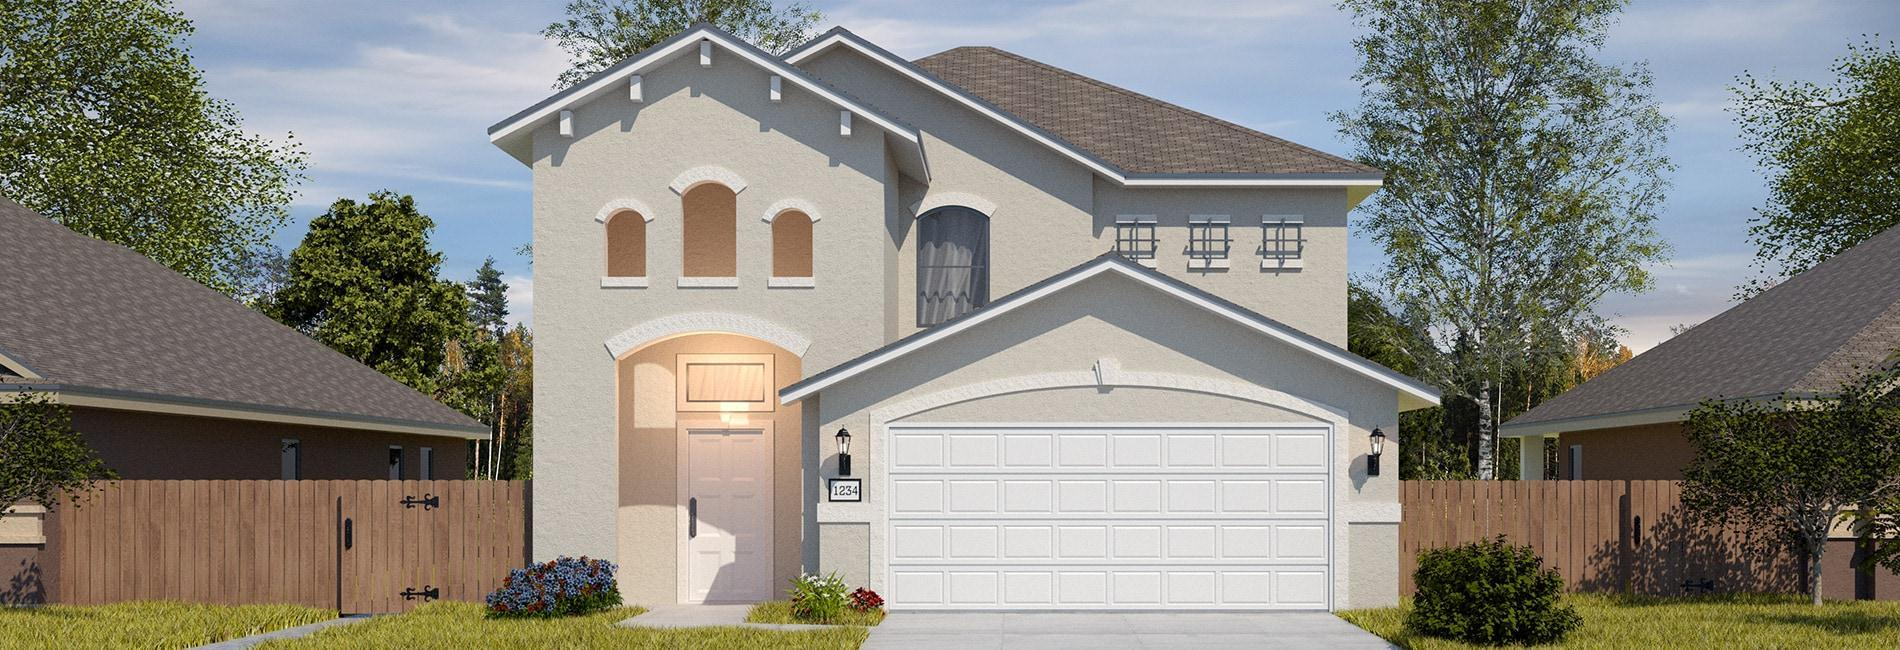 Exterior featured in the San Ignacio By WestWind Homes in Laredo, TX